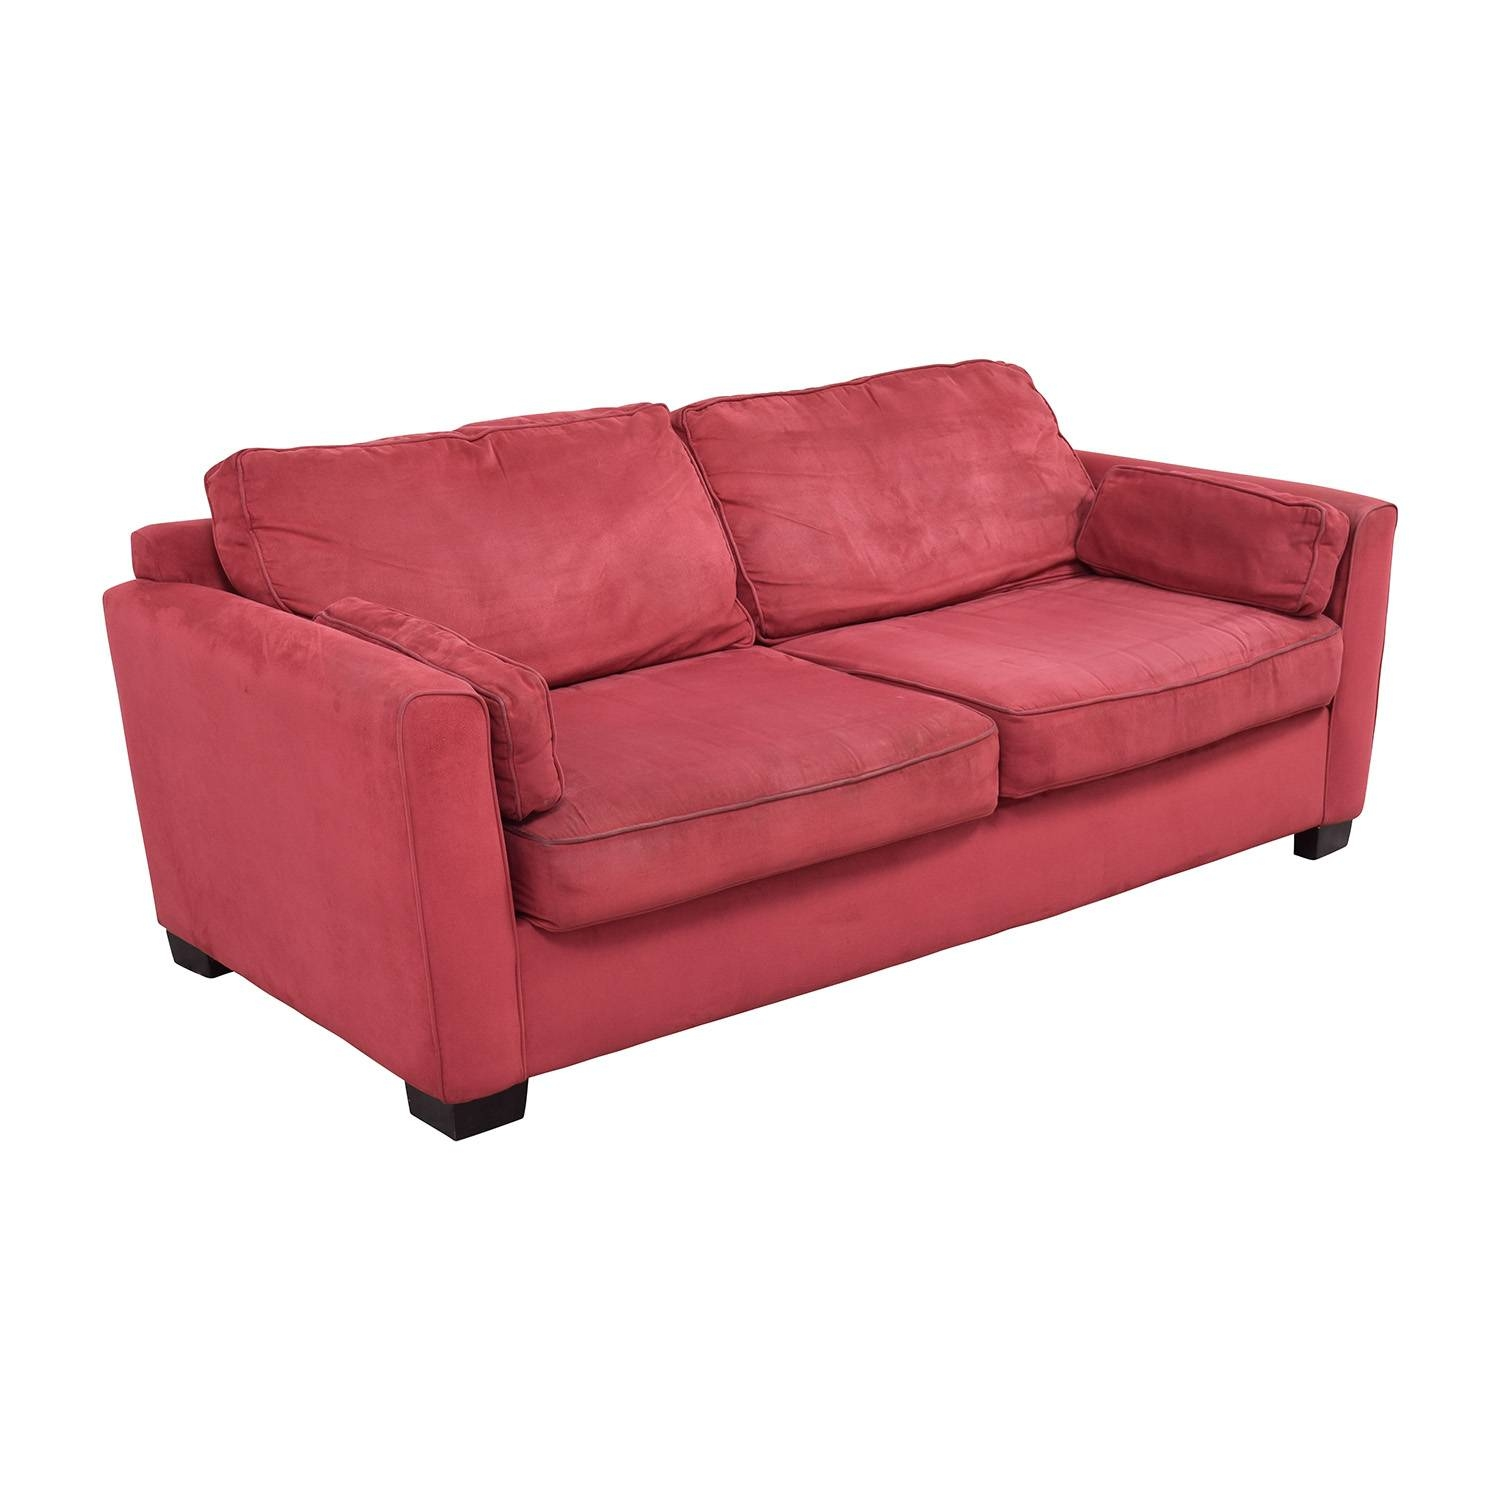 90% Off - Bloomingdales Bloomingdale's Classic Low Profile Red regarding Bloomingdales Sofas (Image 10 of 15)